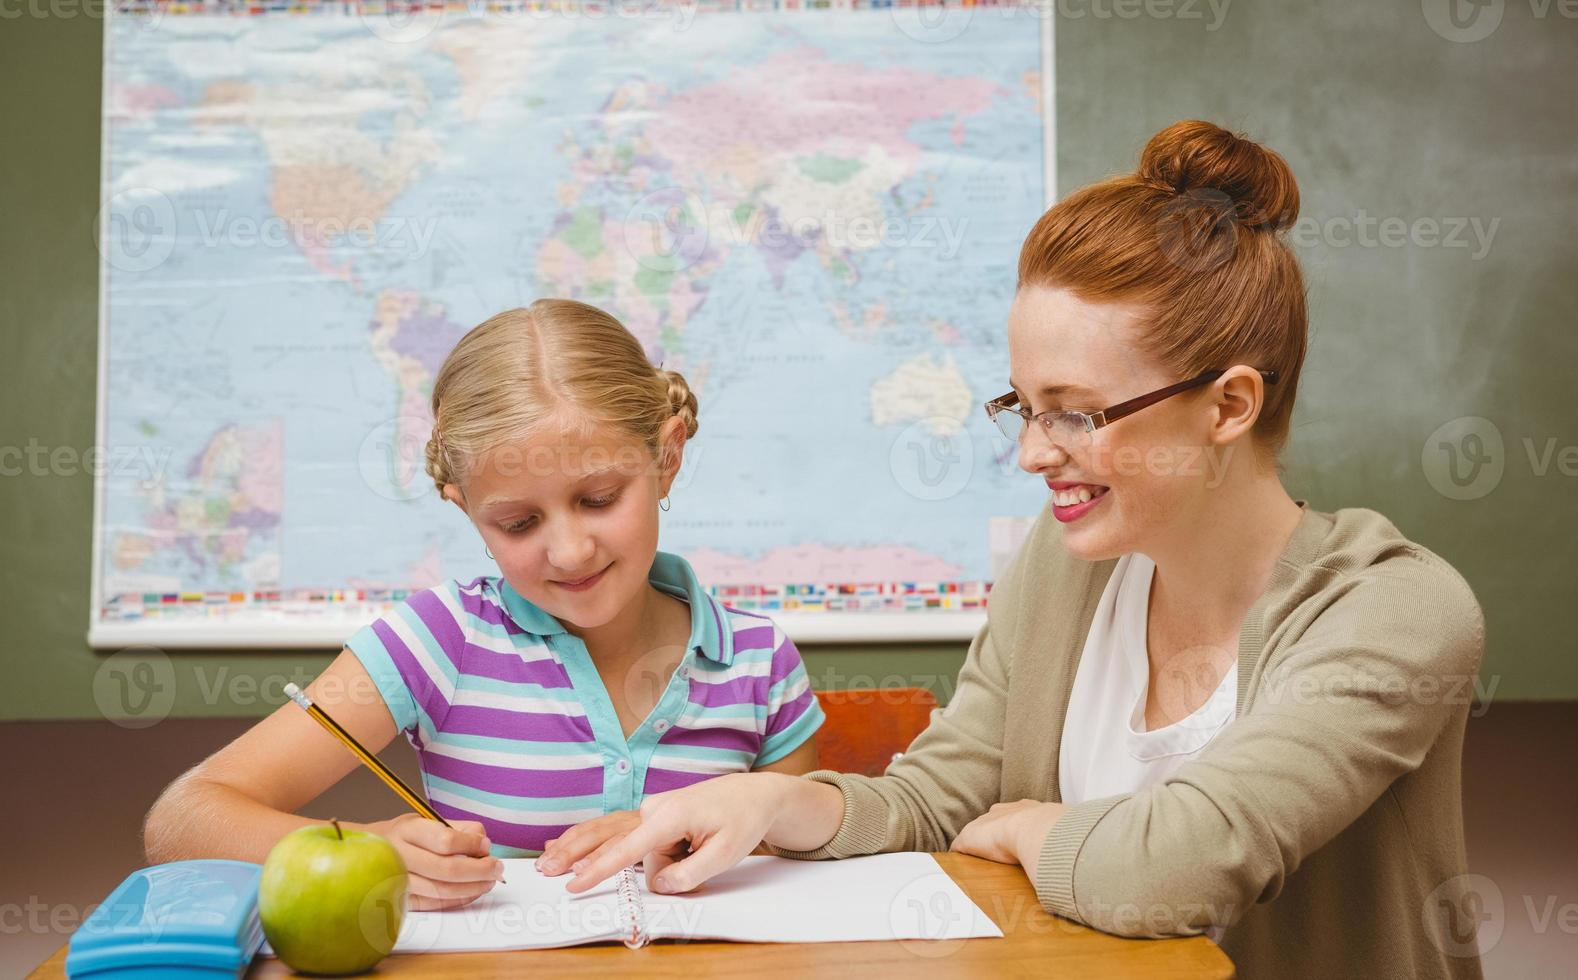 Teacher assisting girl with homework in classroom photo